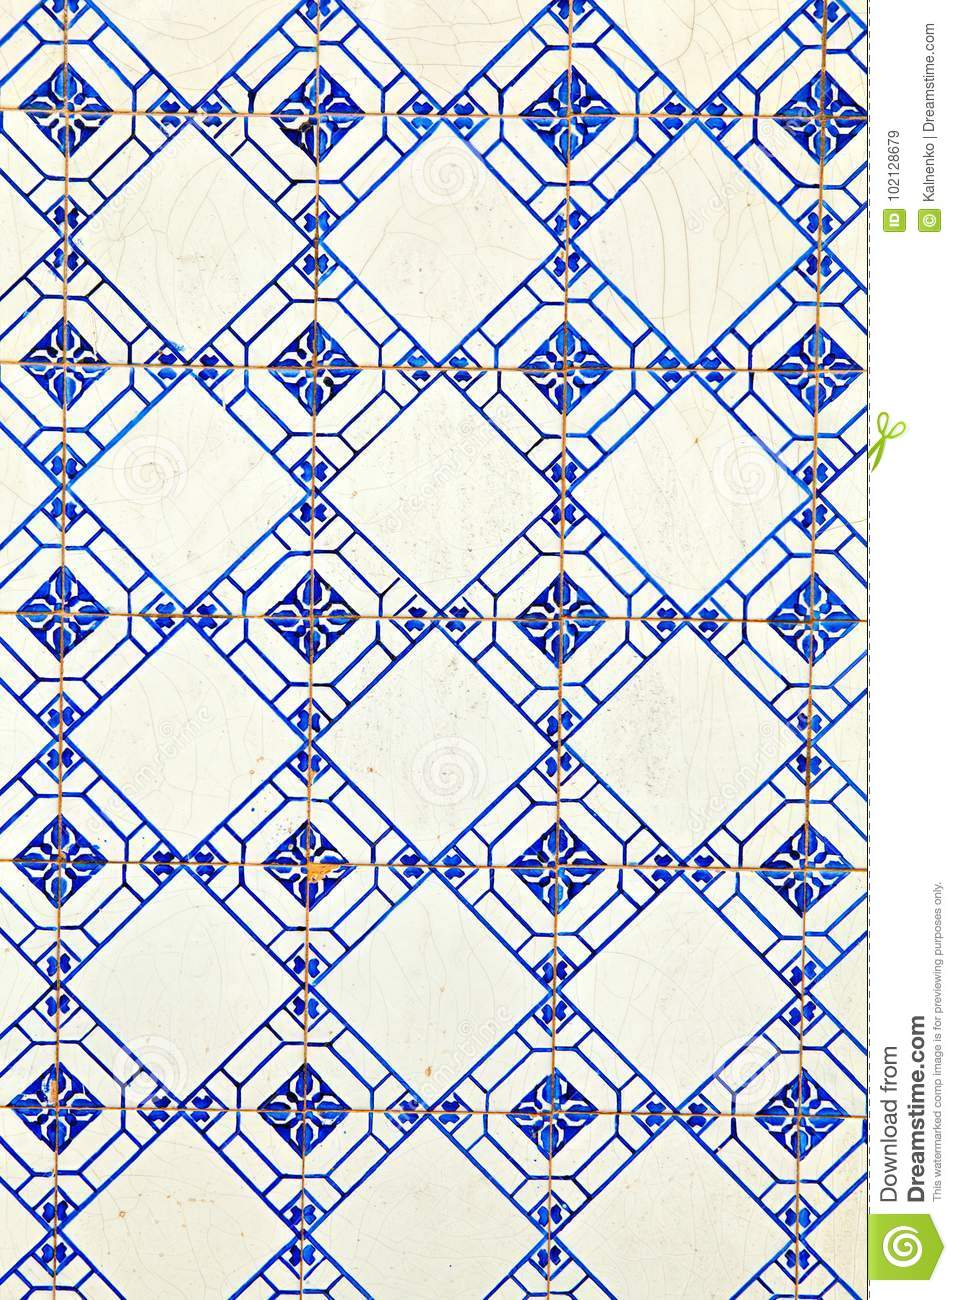 Typical Portuguese Decorations With Colored Ceramic Tiles . Stock ...